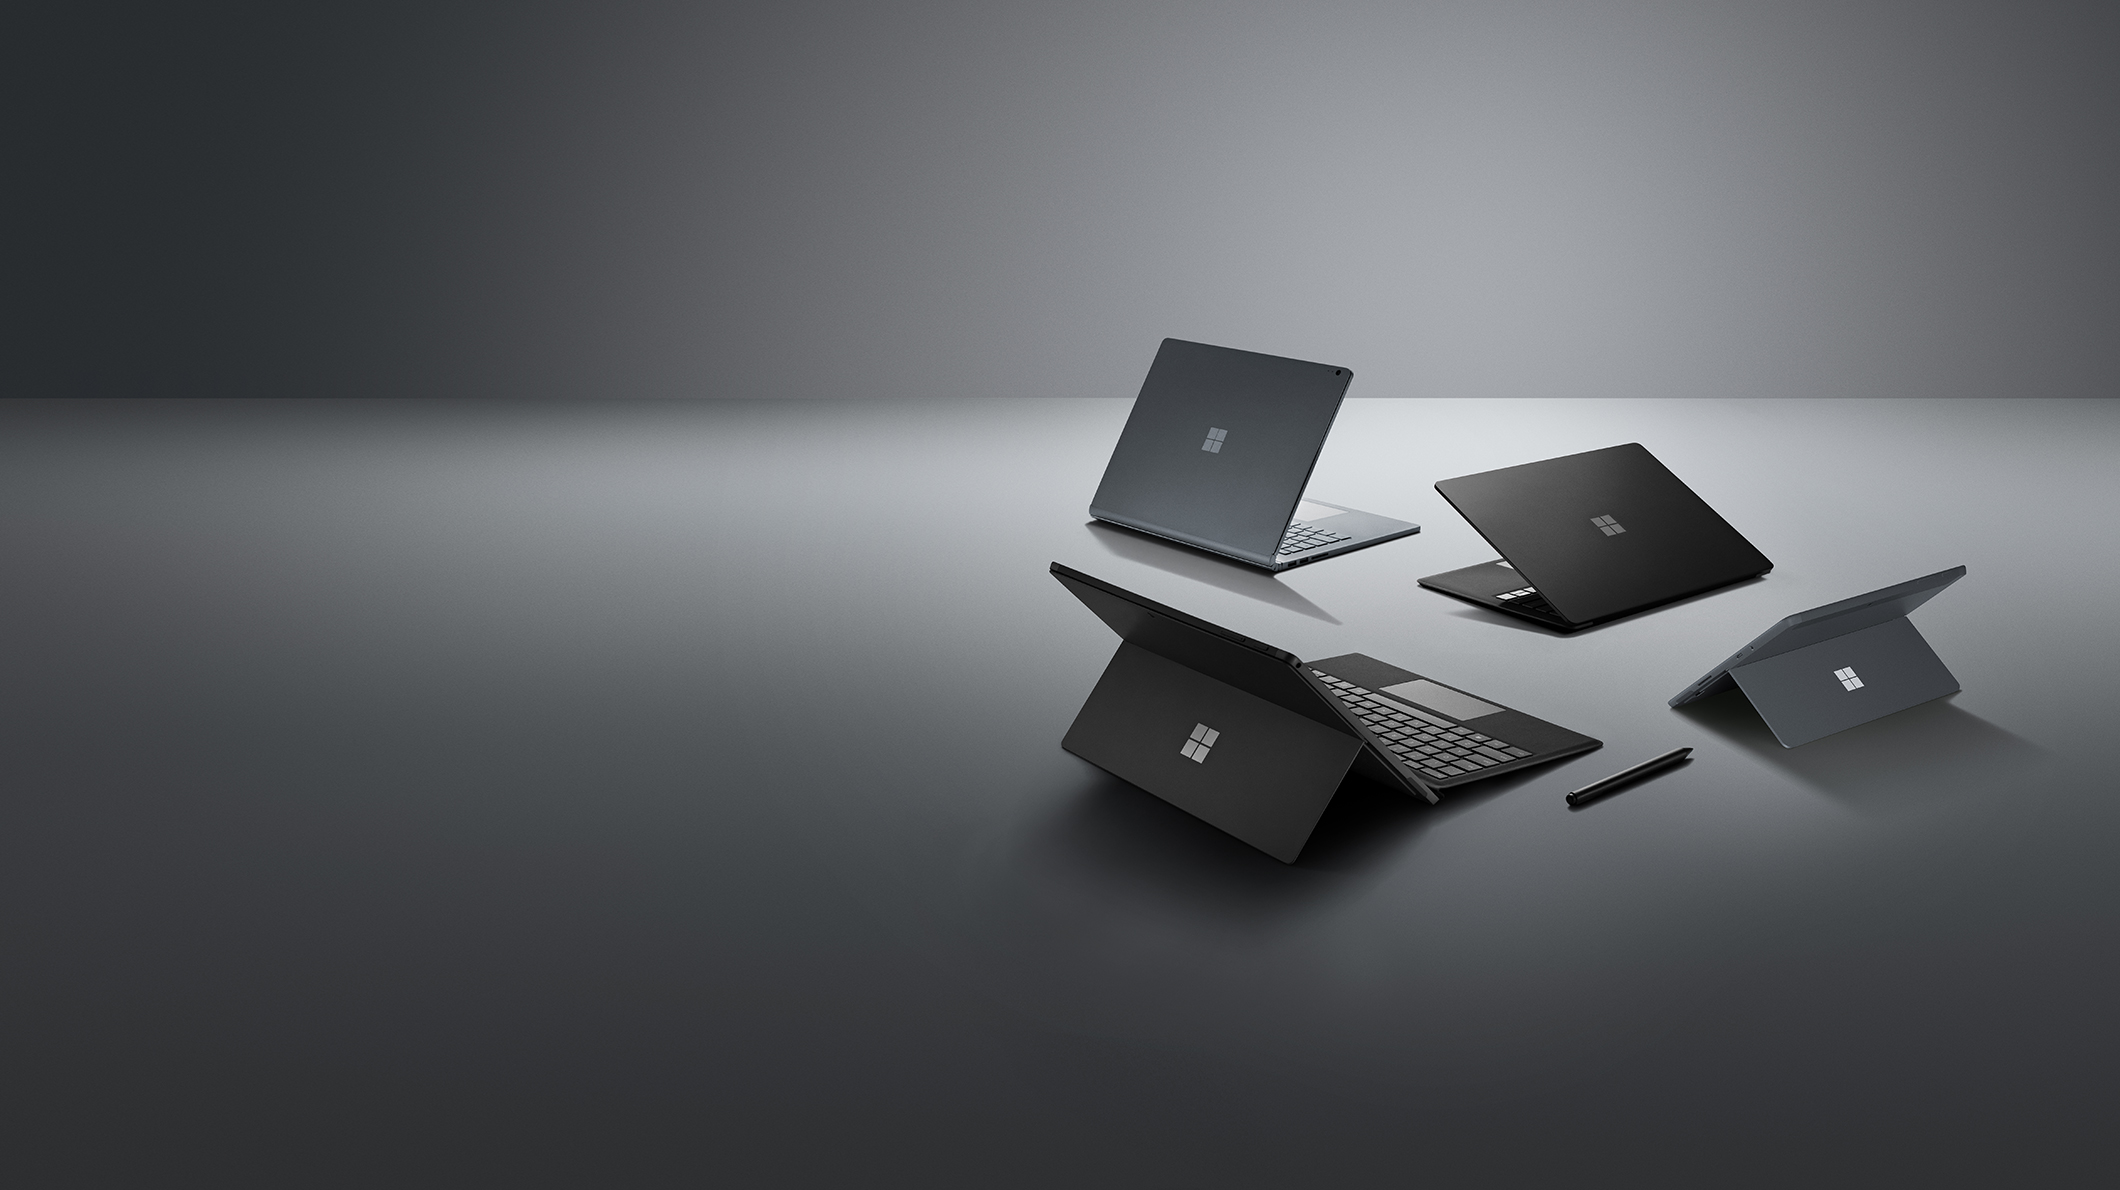 Surface Laptop 2, Surface Pro 6, Surface Book 2, Surface Go